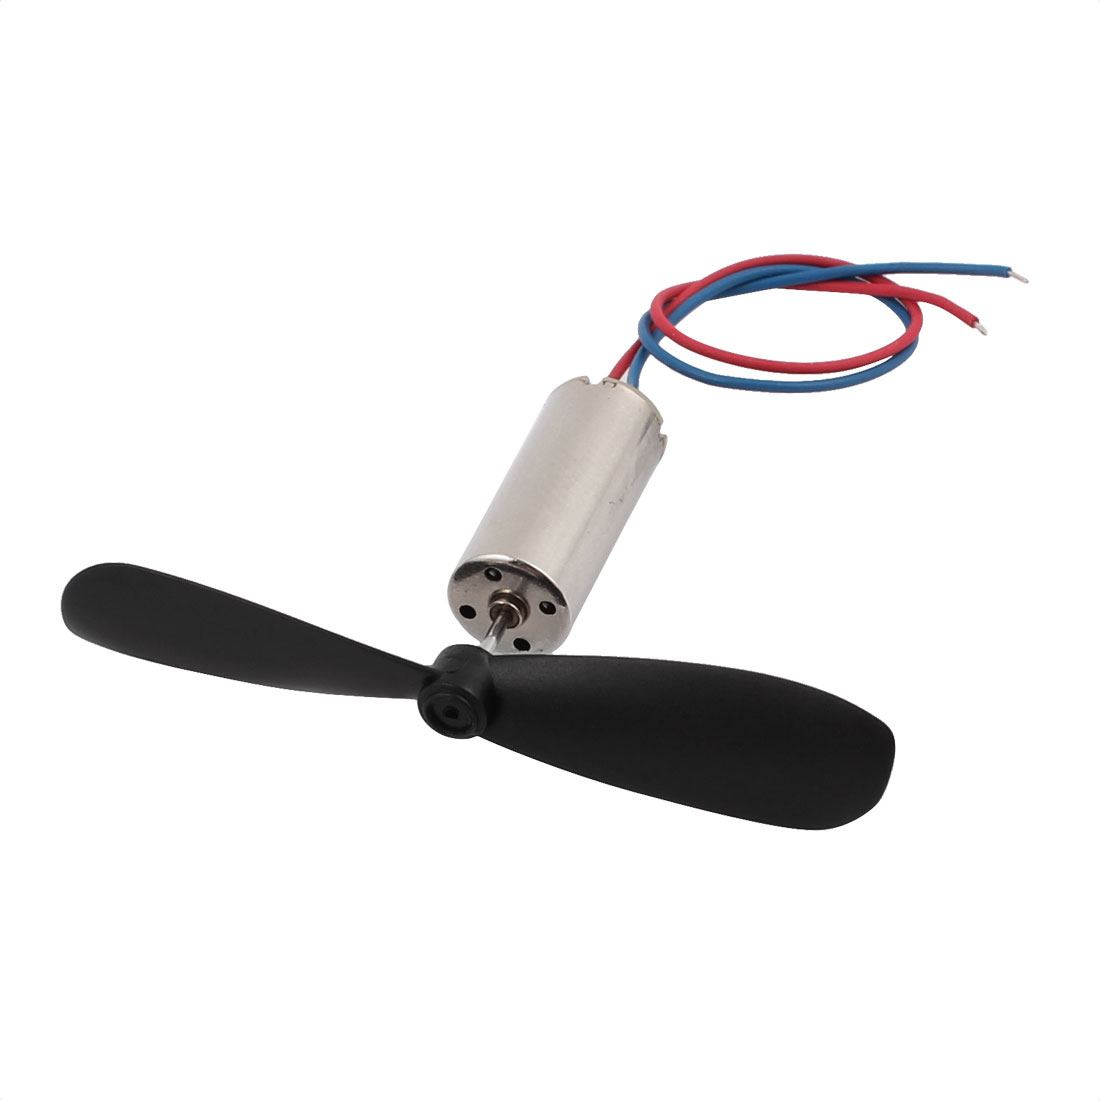 DC 1.5V 25000RPM 716 Motor w CW Helicopter Propeller for RC Quadcopter by Unique-Bargains